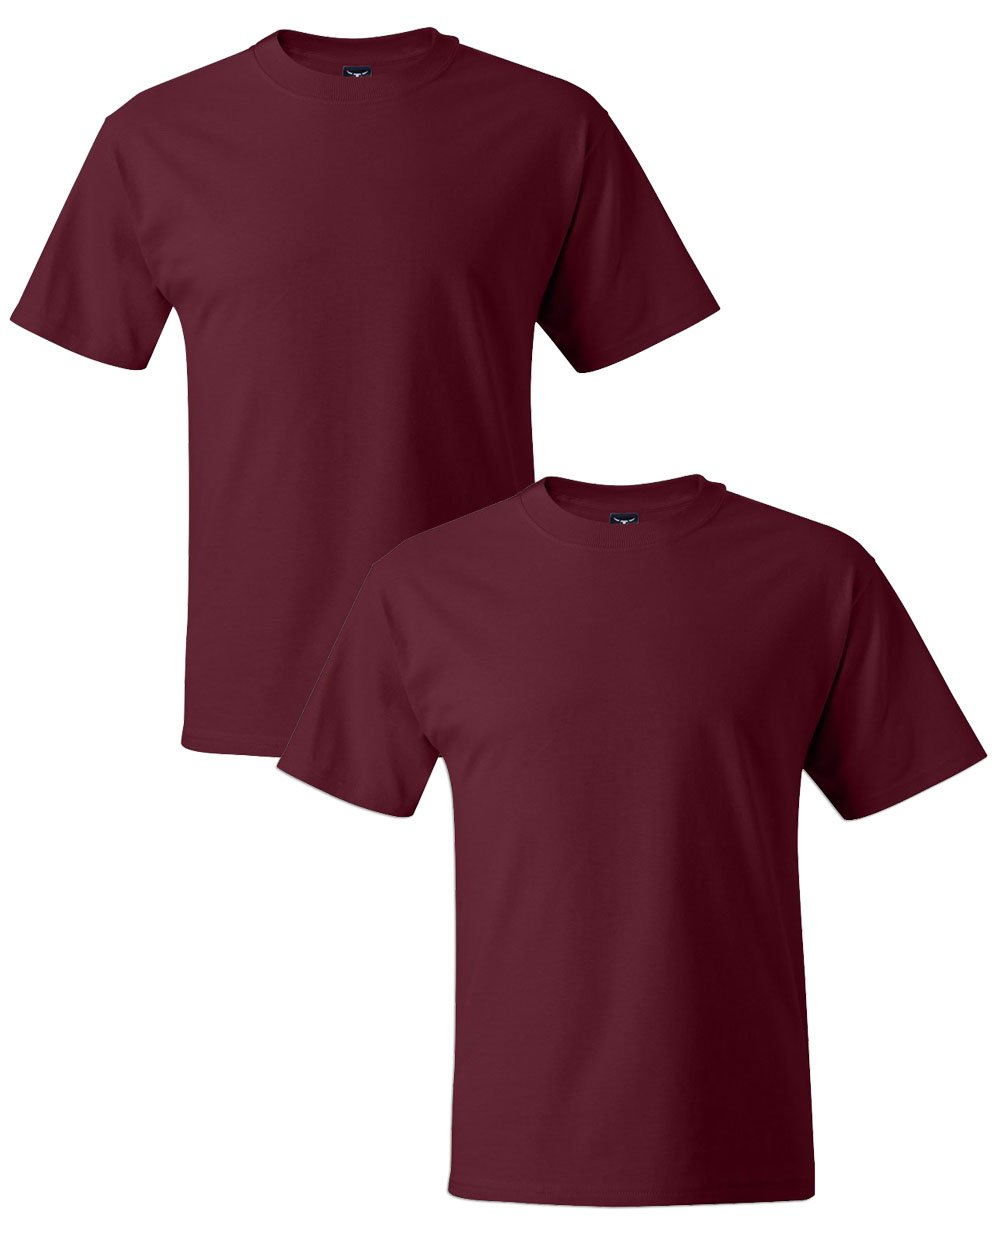 Hanes Men's Short Sleeve Beefy-T, Cardinal, XX-Large (Pack of 2) by Hanes